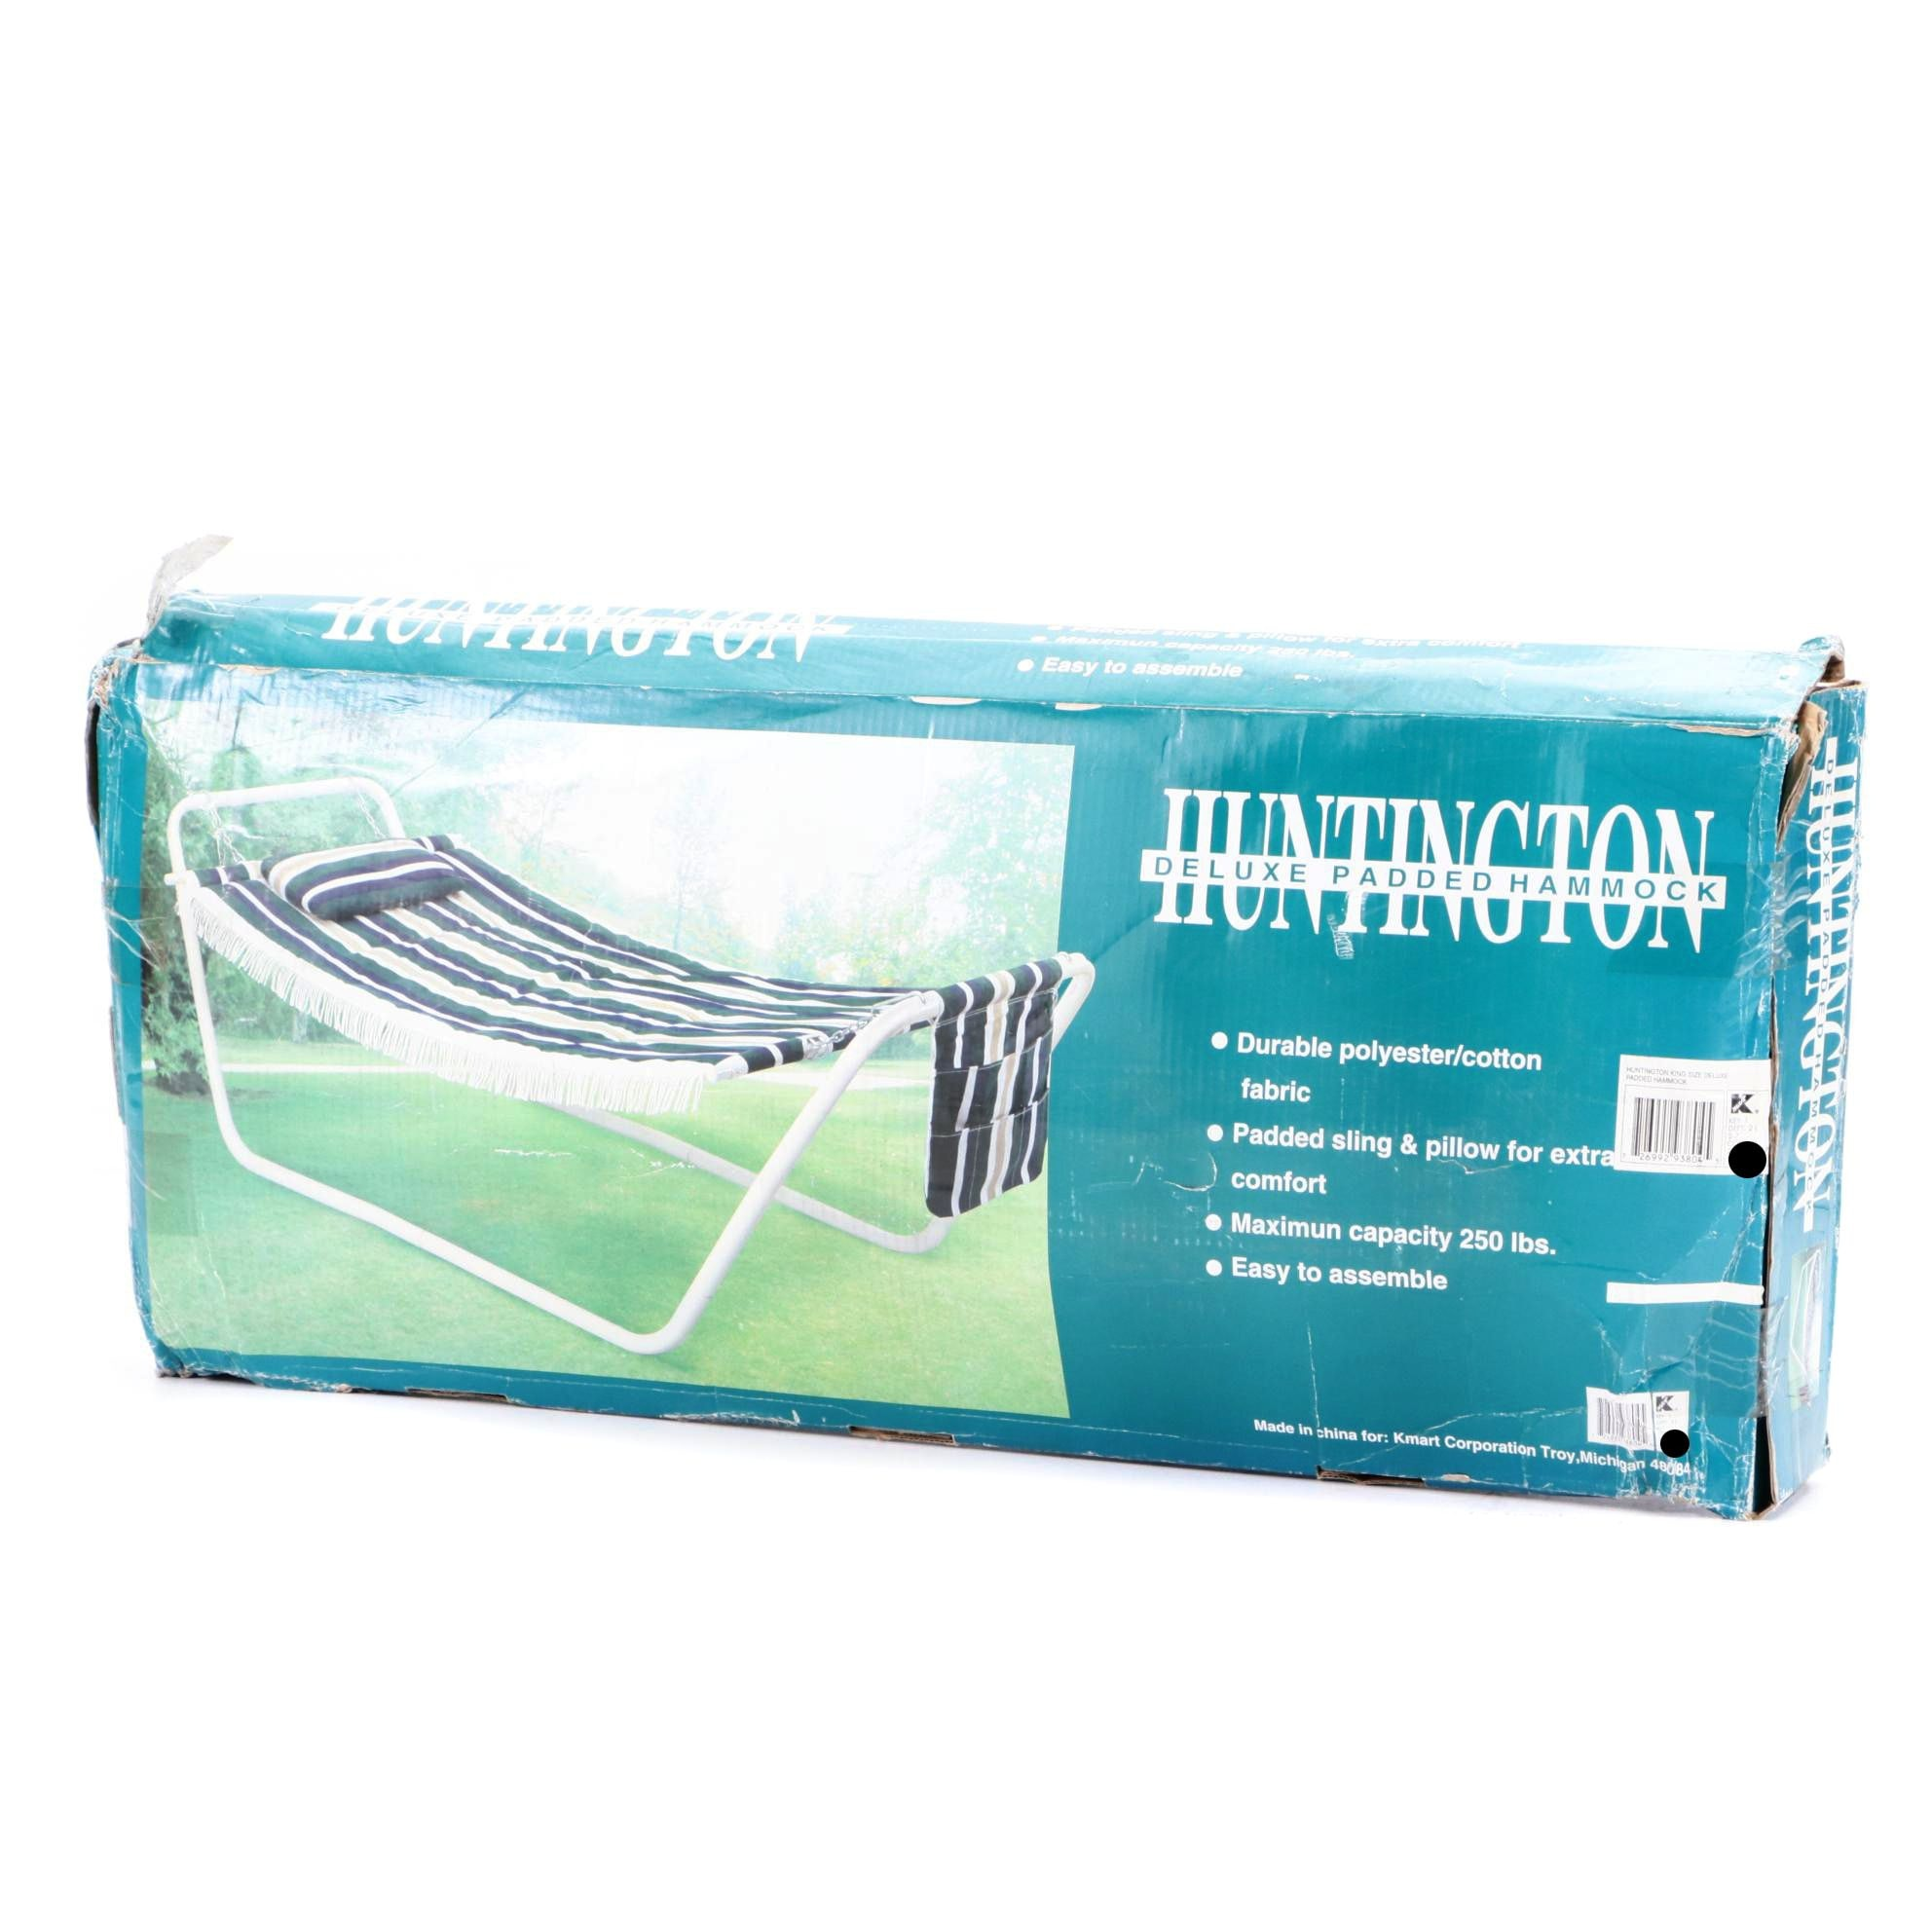 Huntington Padded Hammock